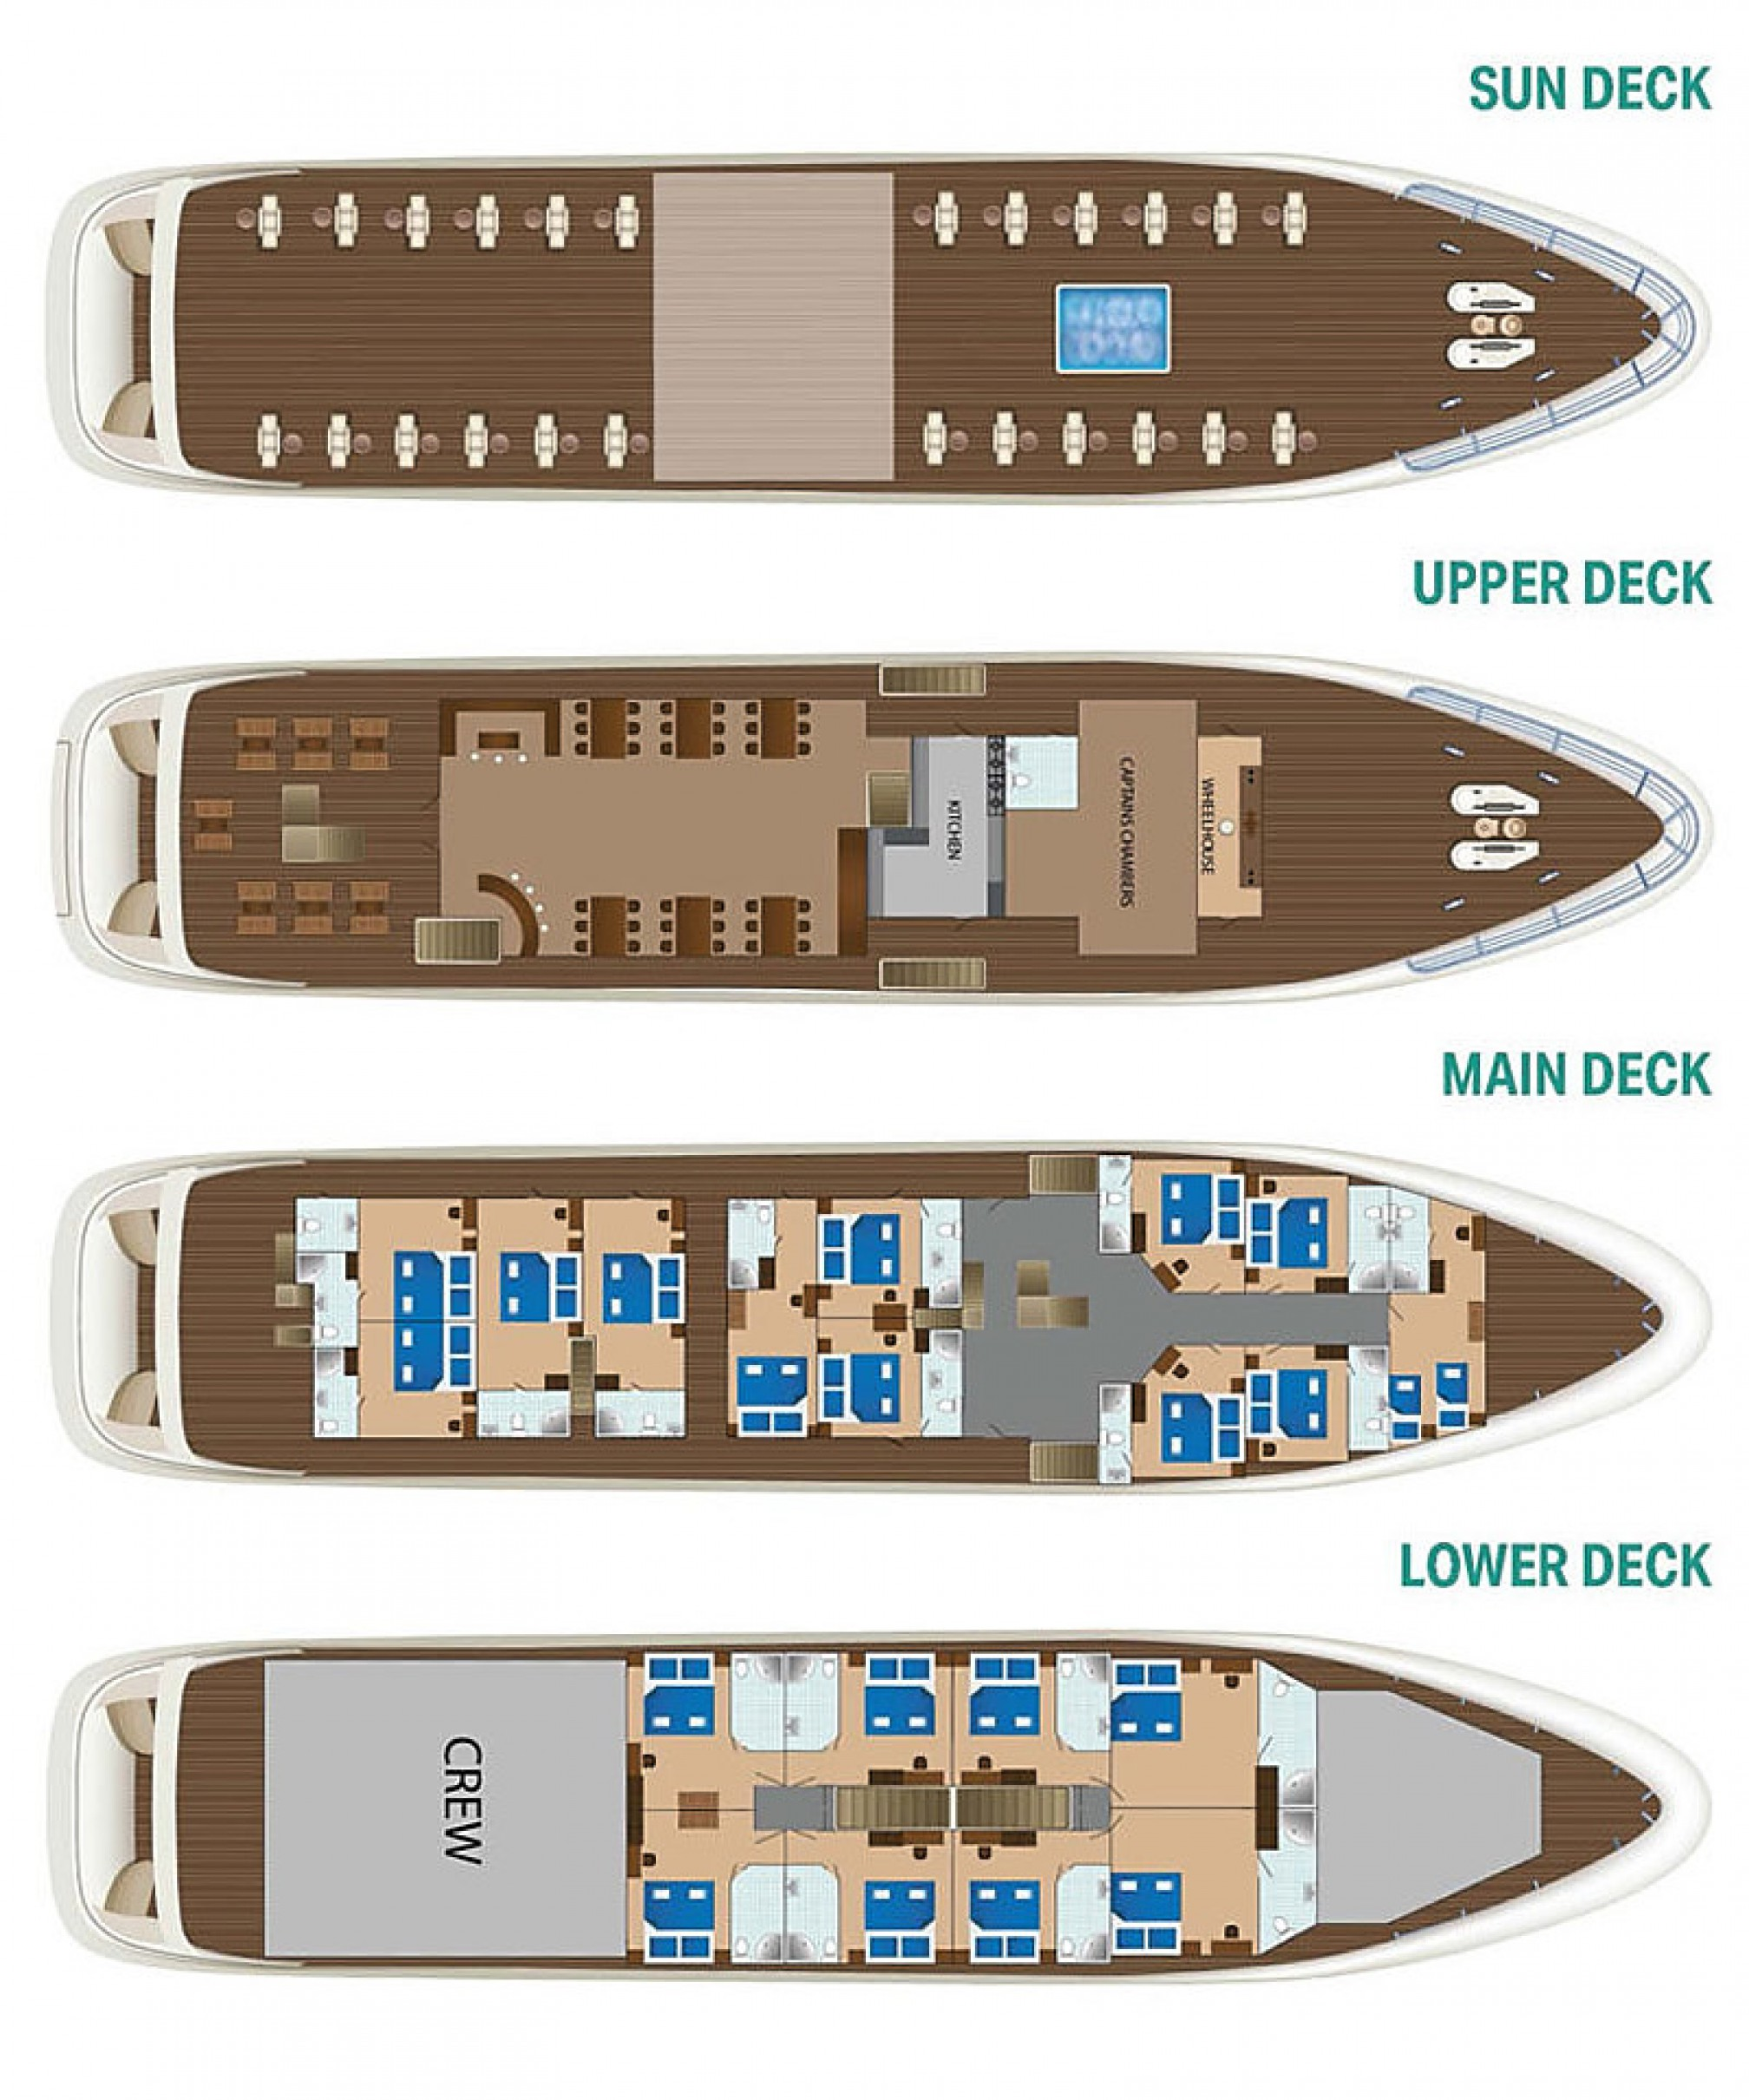 Rental yacht Diamond 40 pax layout